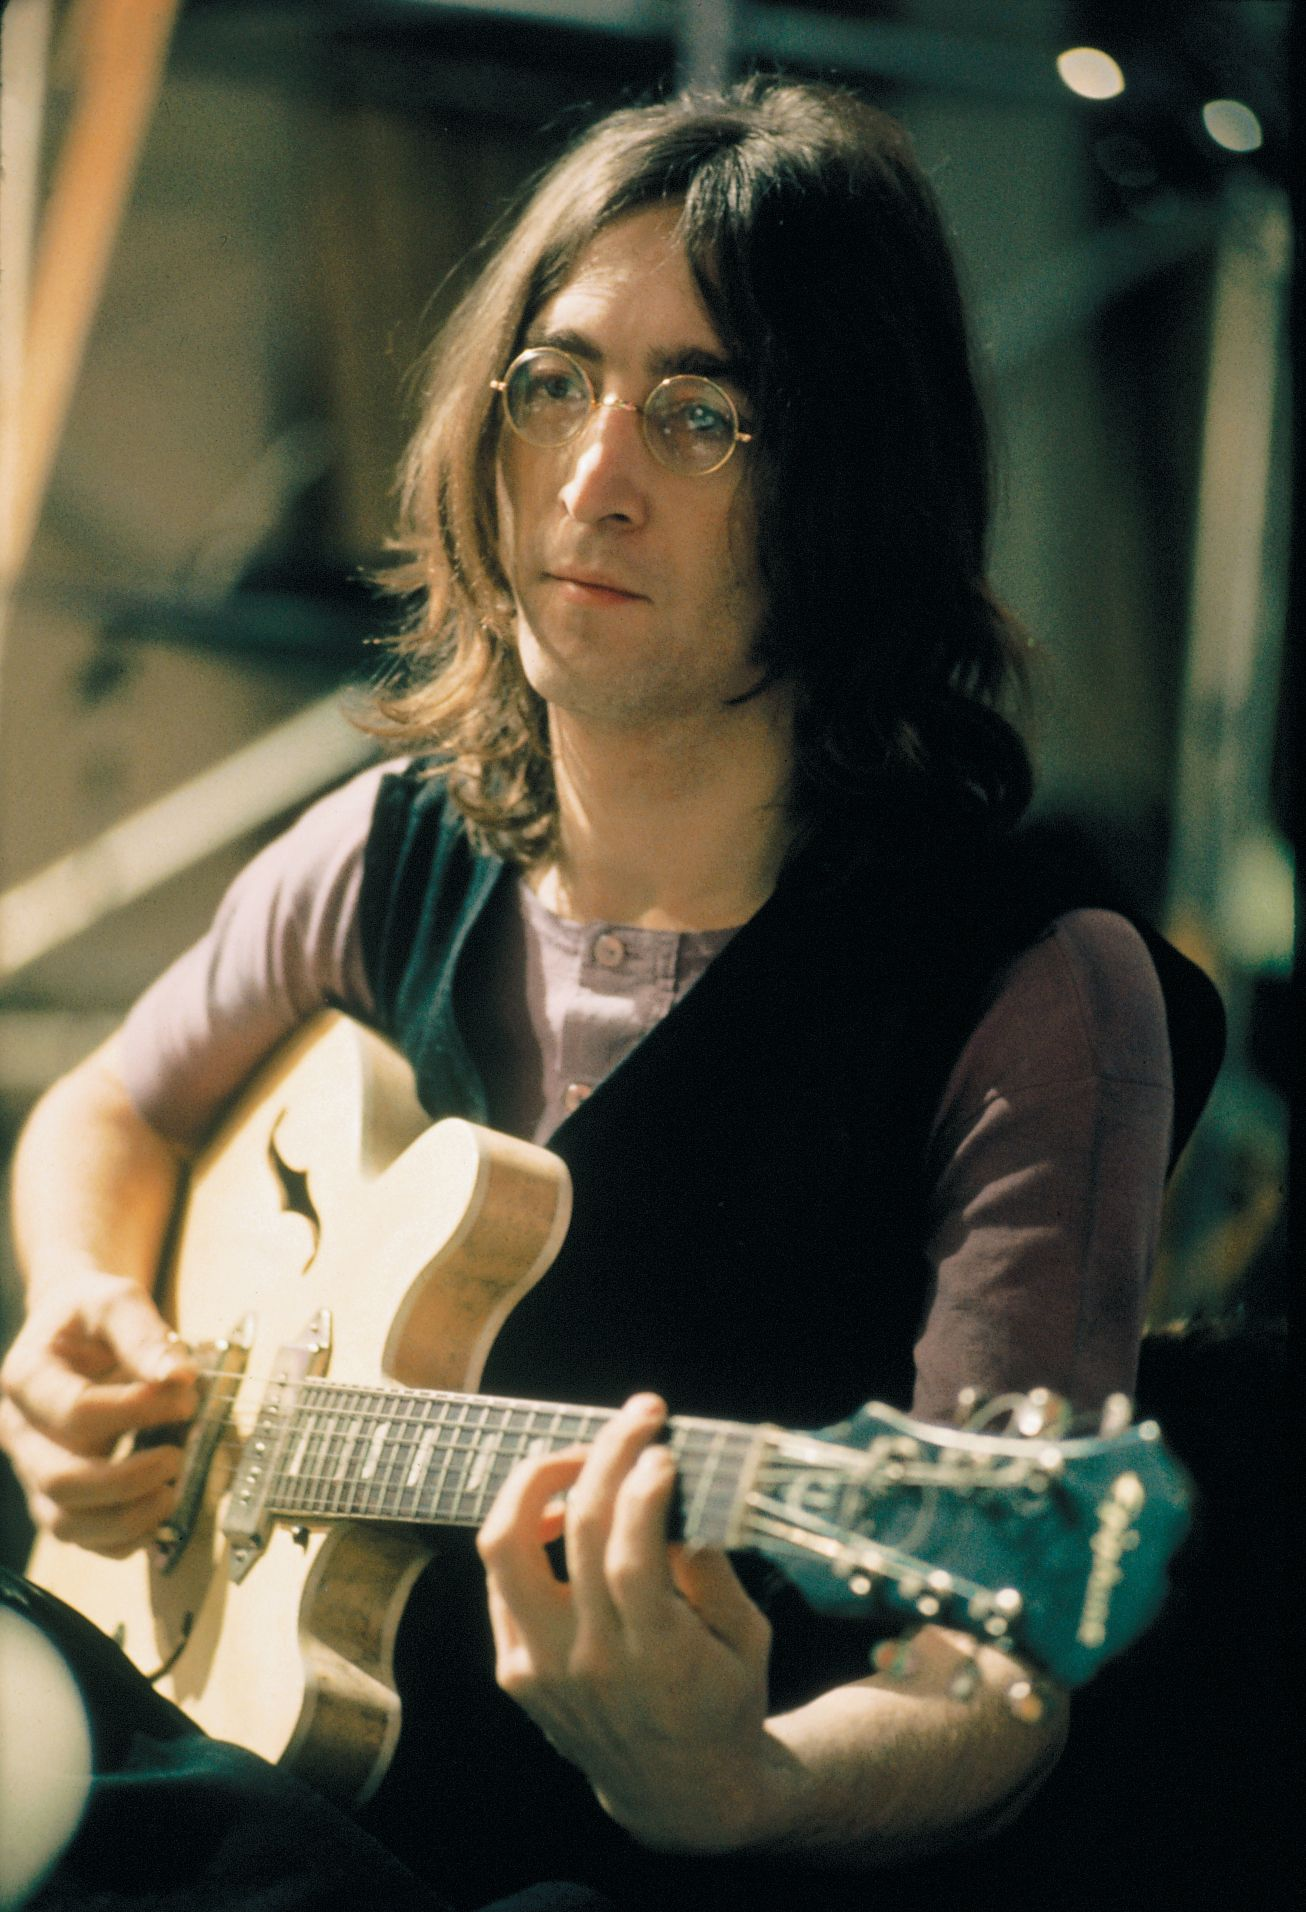 John Lennon This Epiphone Casino Guitar He S Playing Used To Have Paint On It But He Sanded It Off And Spray Painted The Back For Muzikanten Gitaristen Mensen